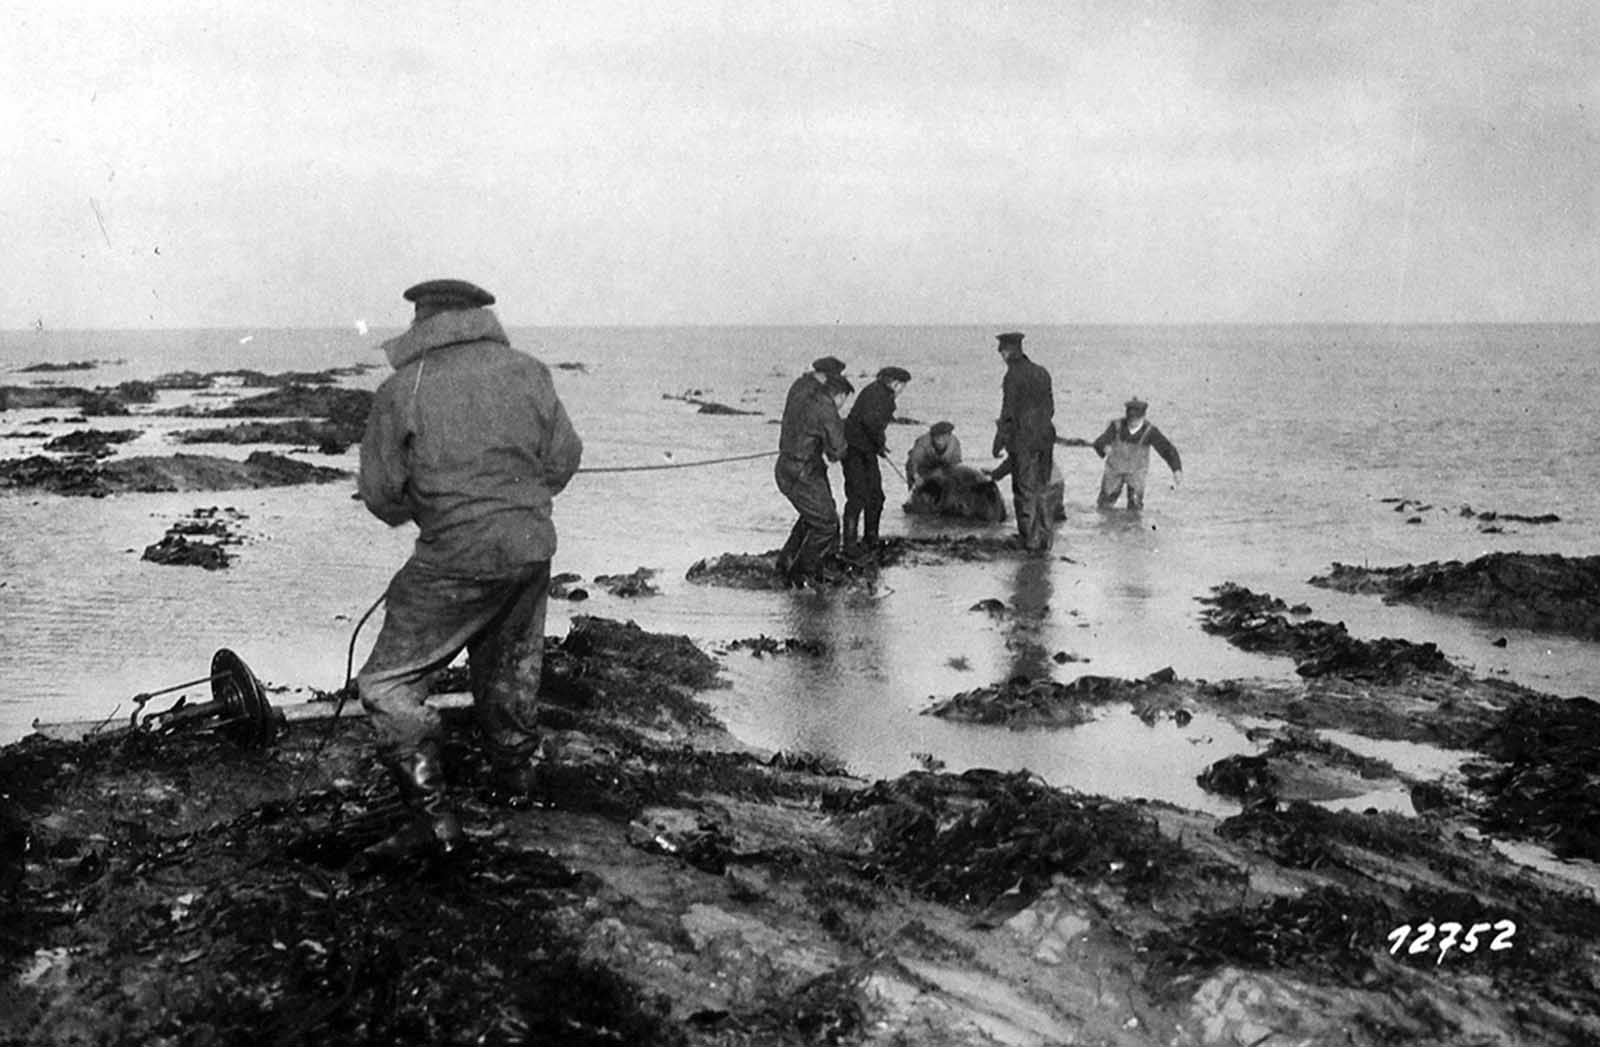 A mine is dragged ashore on Heligoland, in the North Sea, on October 29, 1918.